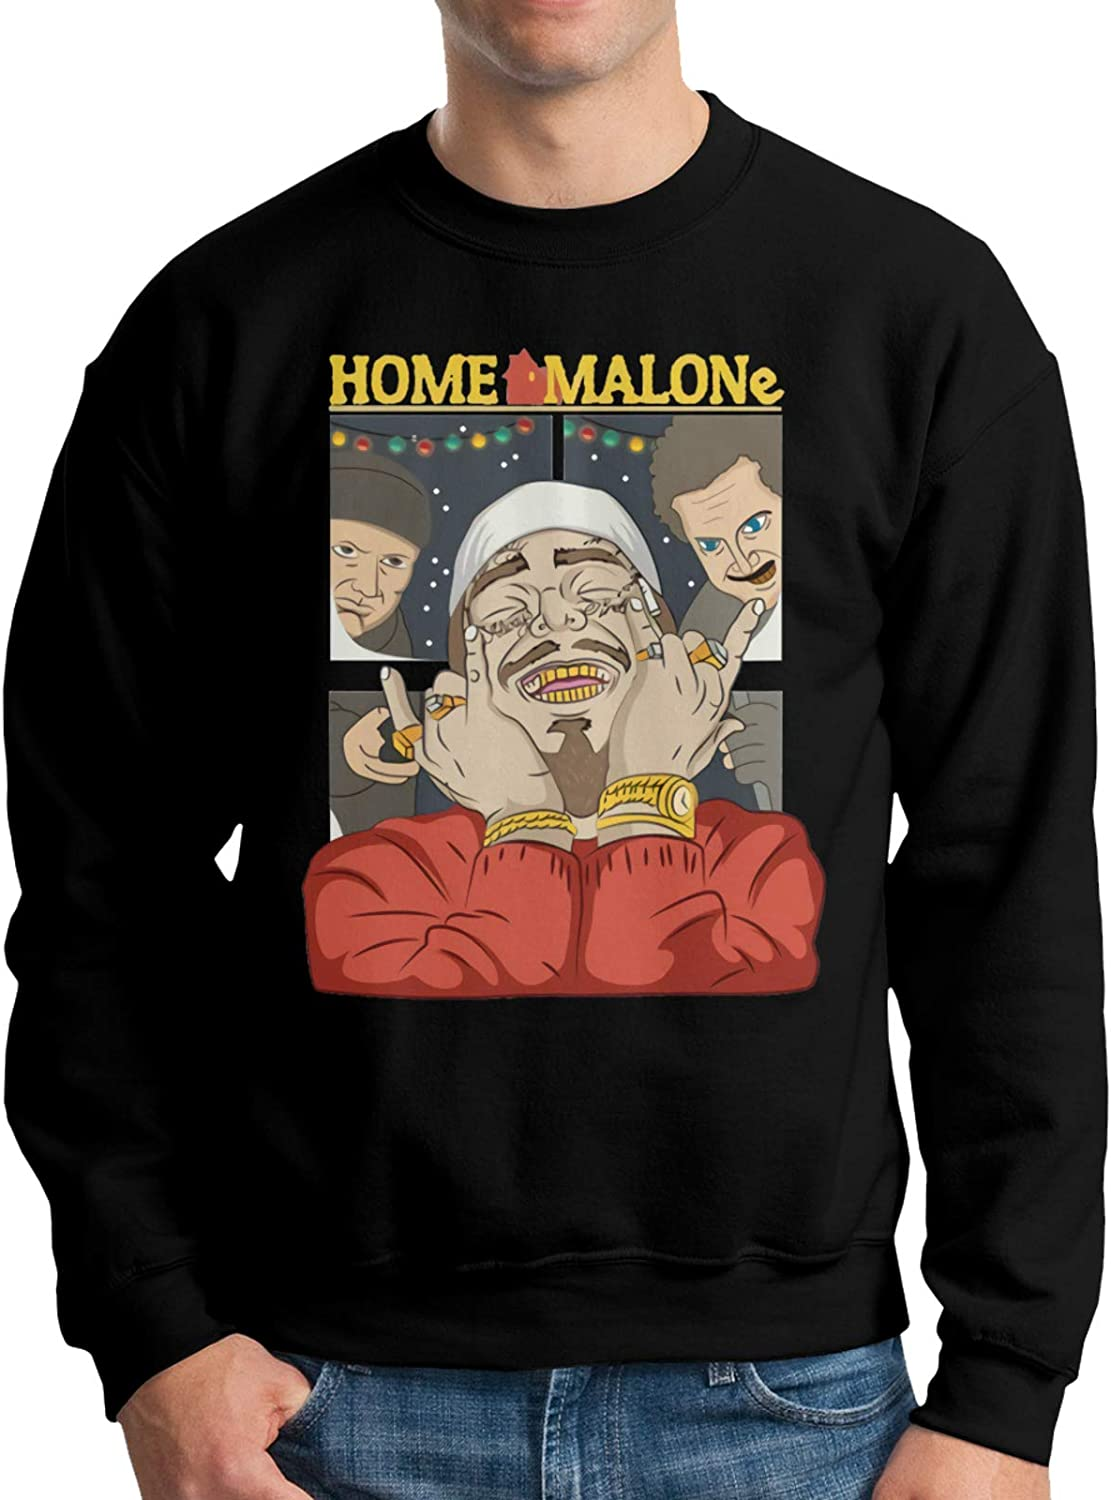 The Best Home Malone Crew Neck